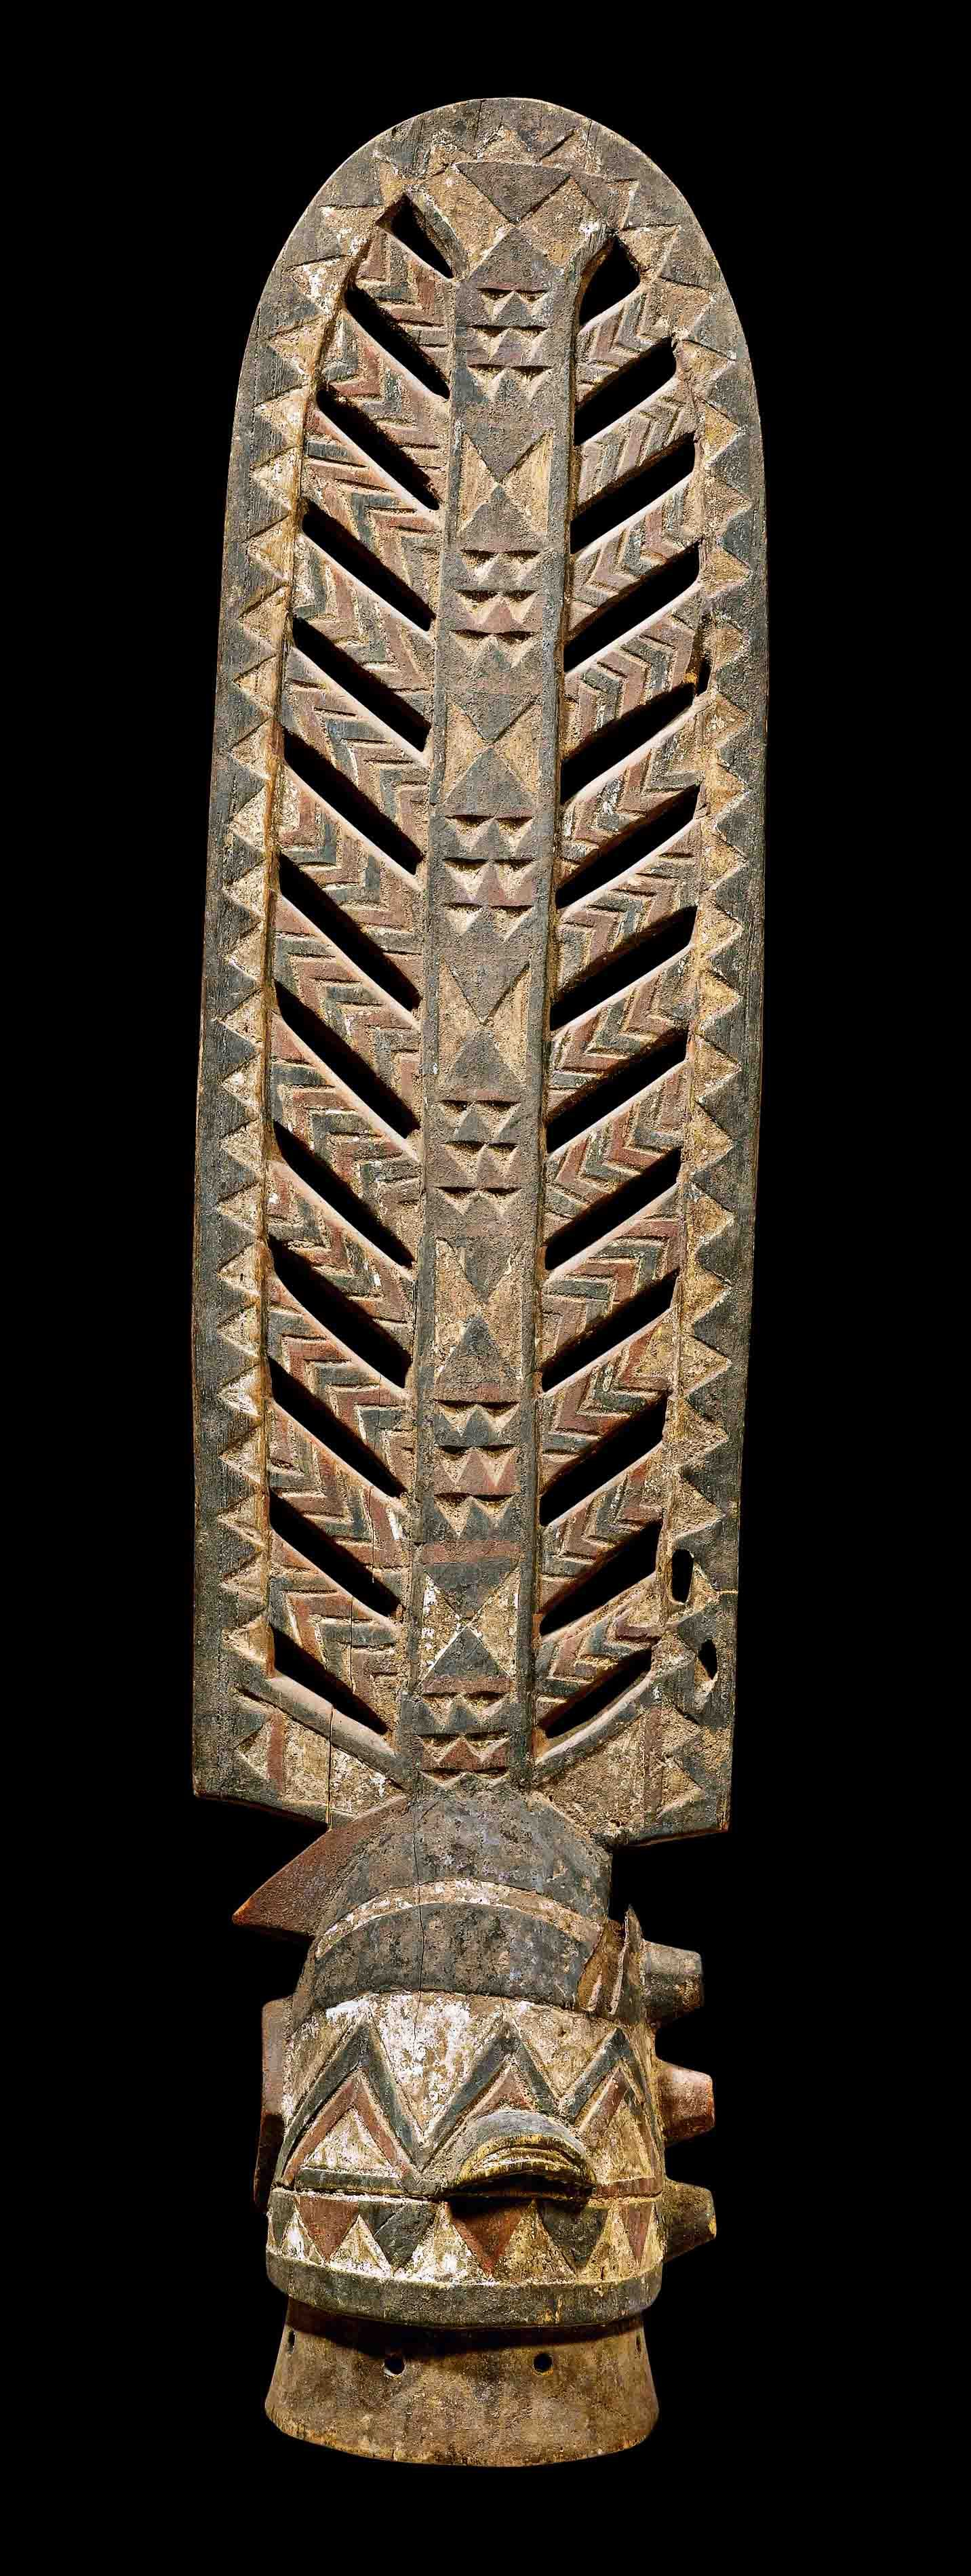 Africa | Headdress/mask from the Bwa people of Burkina Faso | Wood and pigment